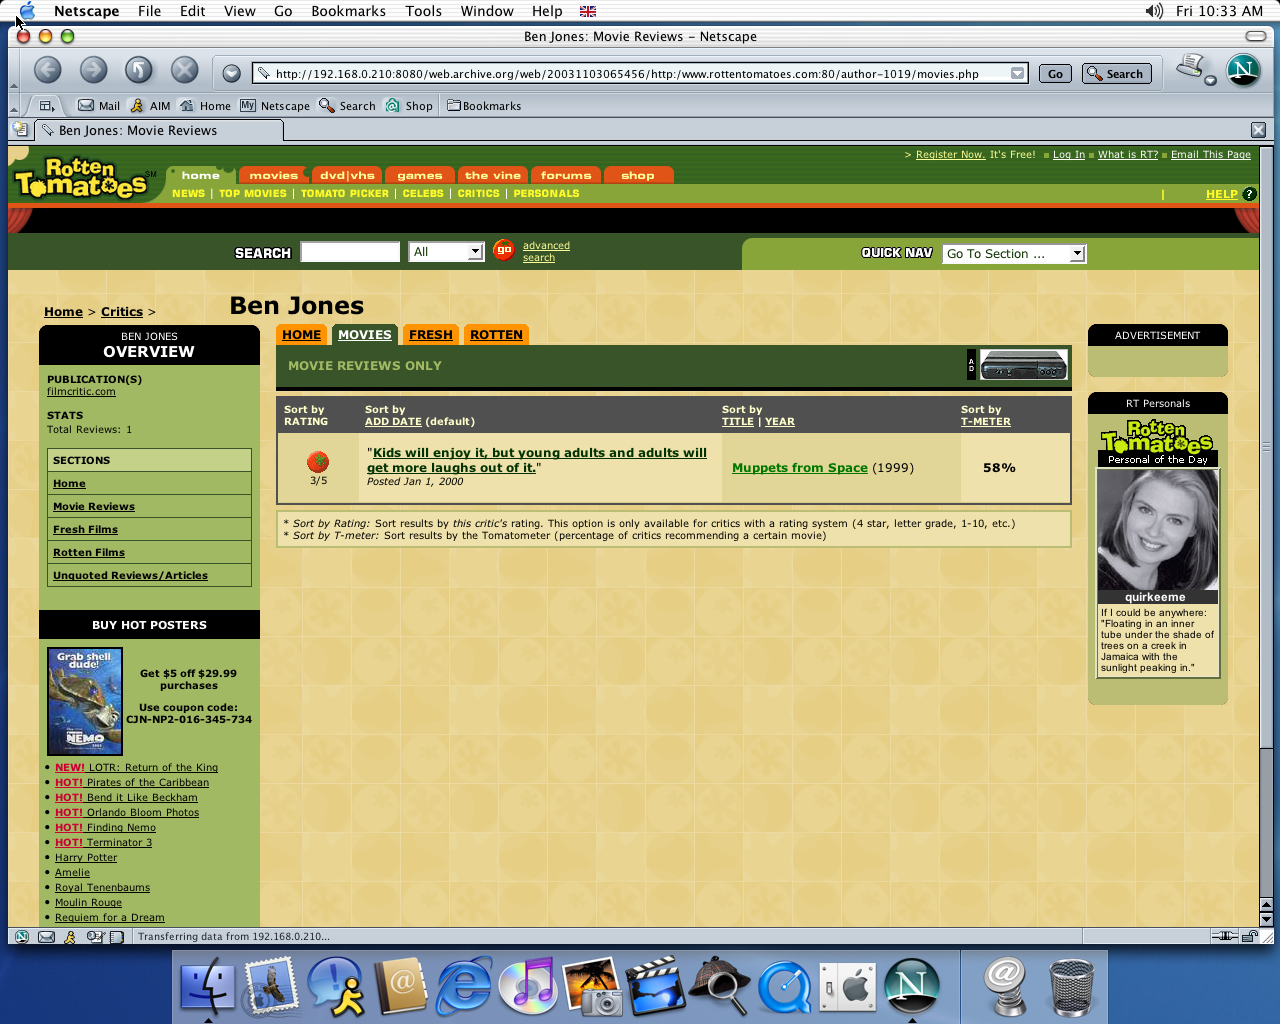 OS X 10.2 PPC with Netscape 7.0 displaying a page from Rotten Tomatoes archived at November 03, 2003 at 06:54:56